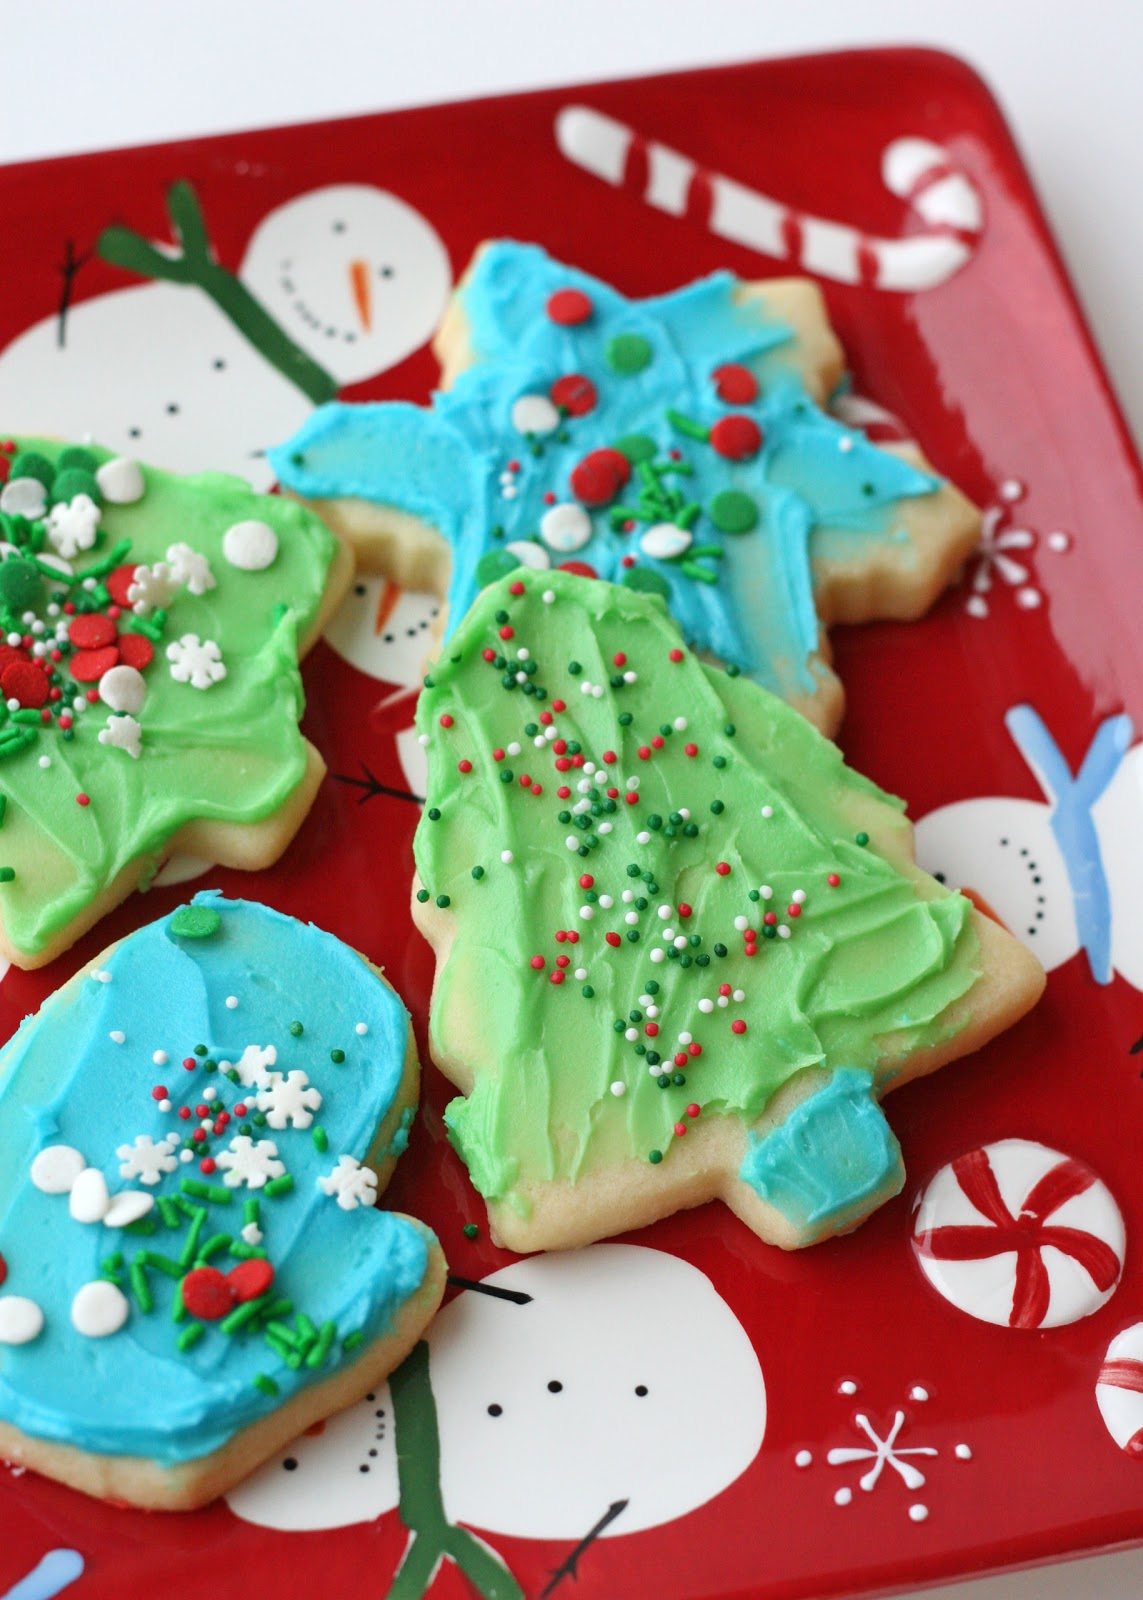 recipes dream cookie decorating kits for kids and easy